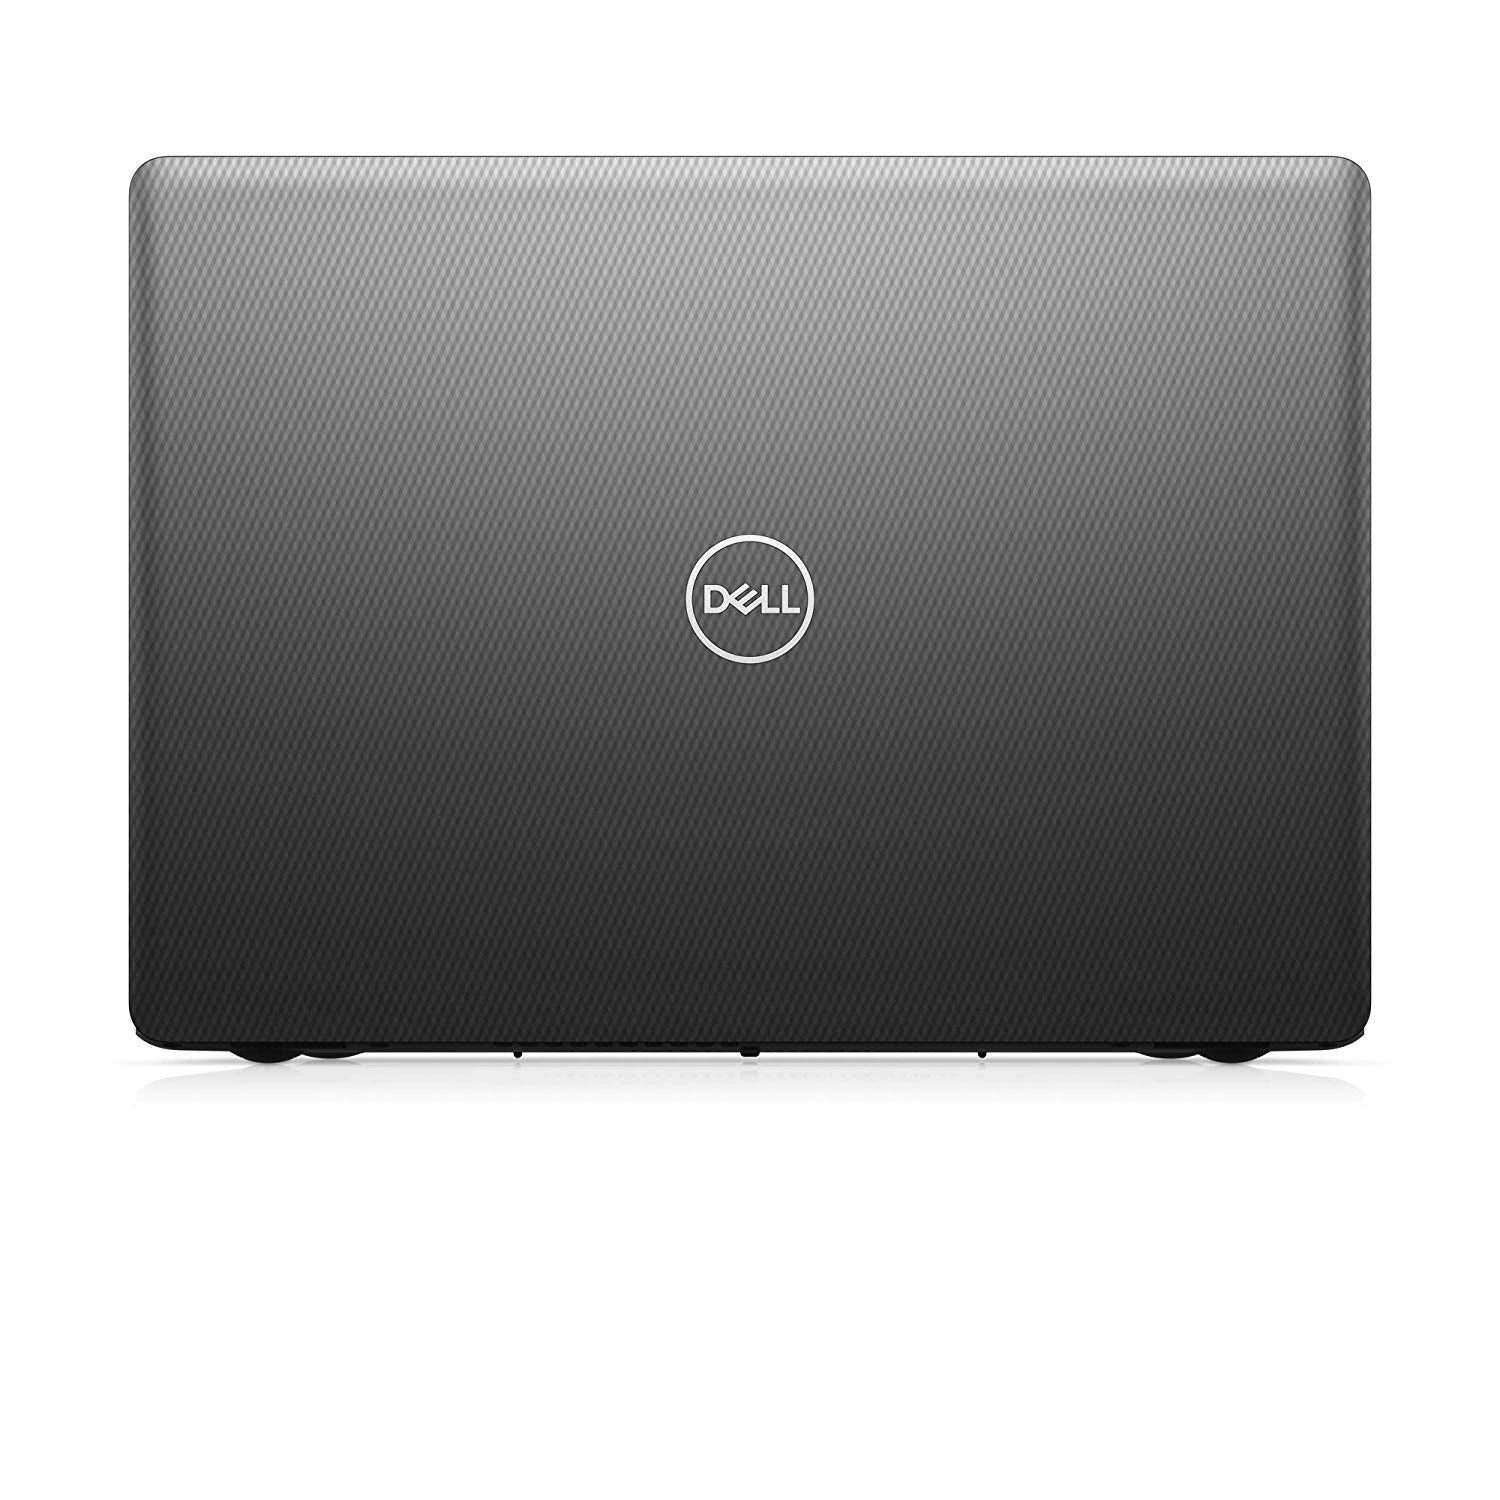 Dell Inspiron 3493-3464BLK Laptop Core I3- 10th Gen, 4GB 1TB HDD 14In Display (1366x768) Bluetooth Webcam DOS